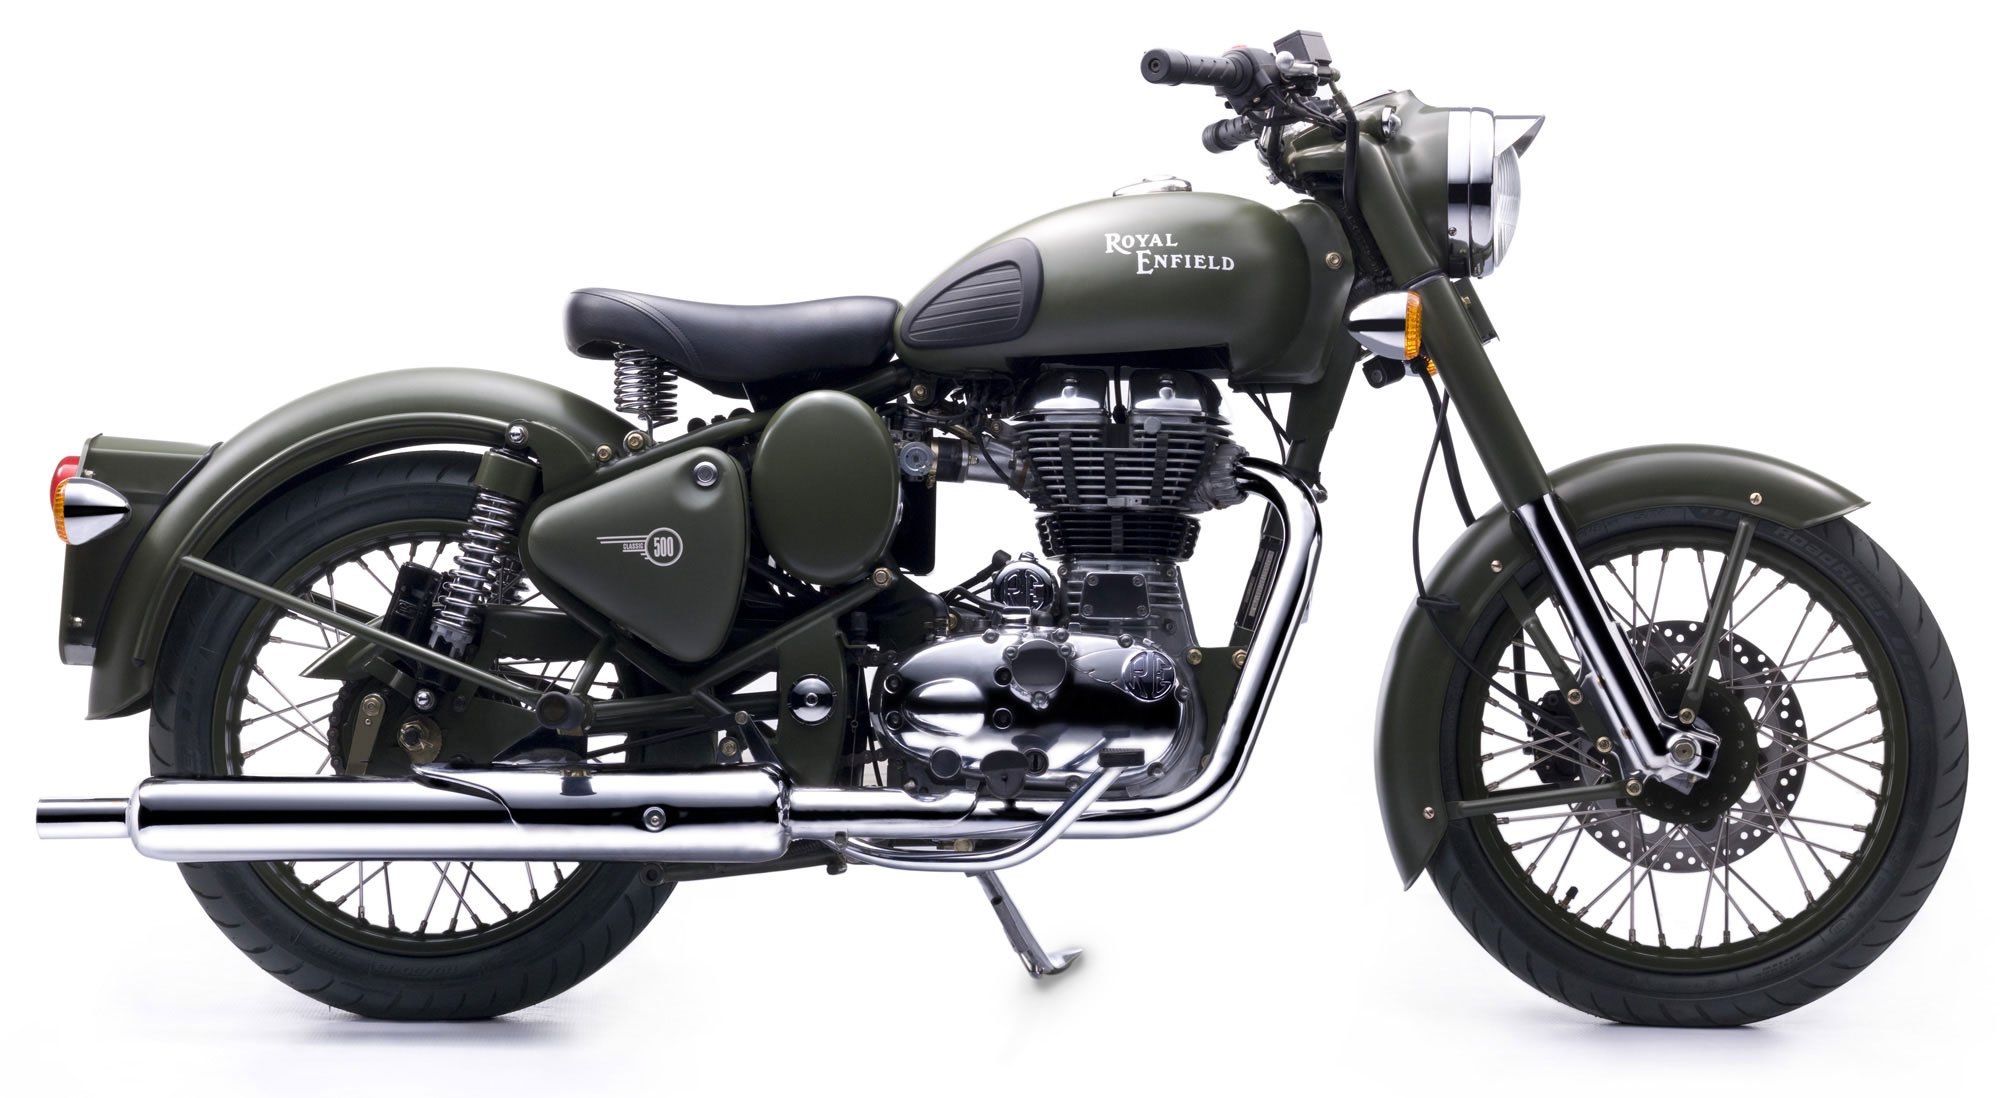 Royal Enfield Bullet 500 Army 2000 images #123240